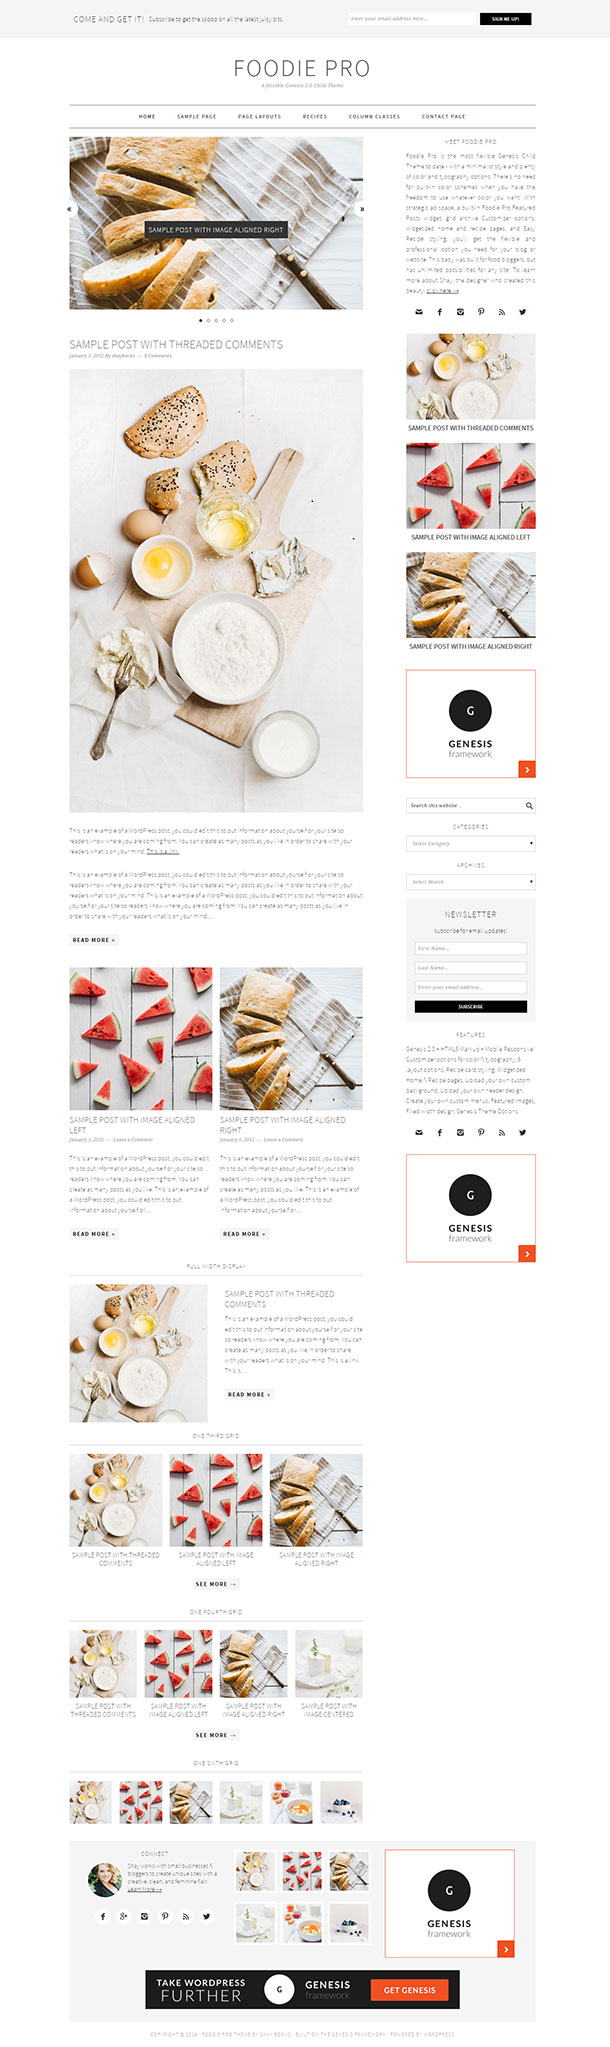 Foodie Pro WordPress Theme Image